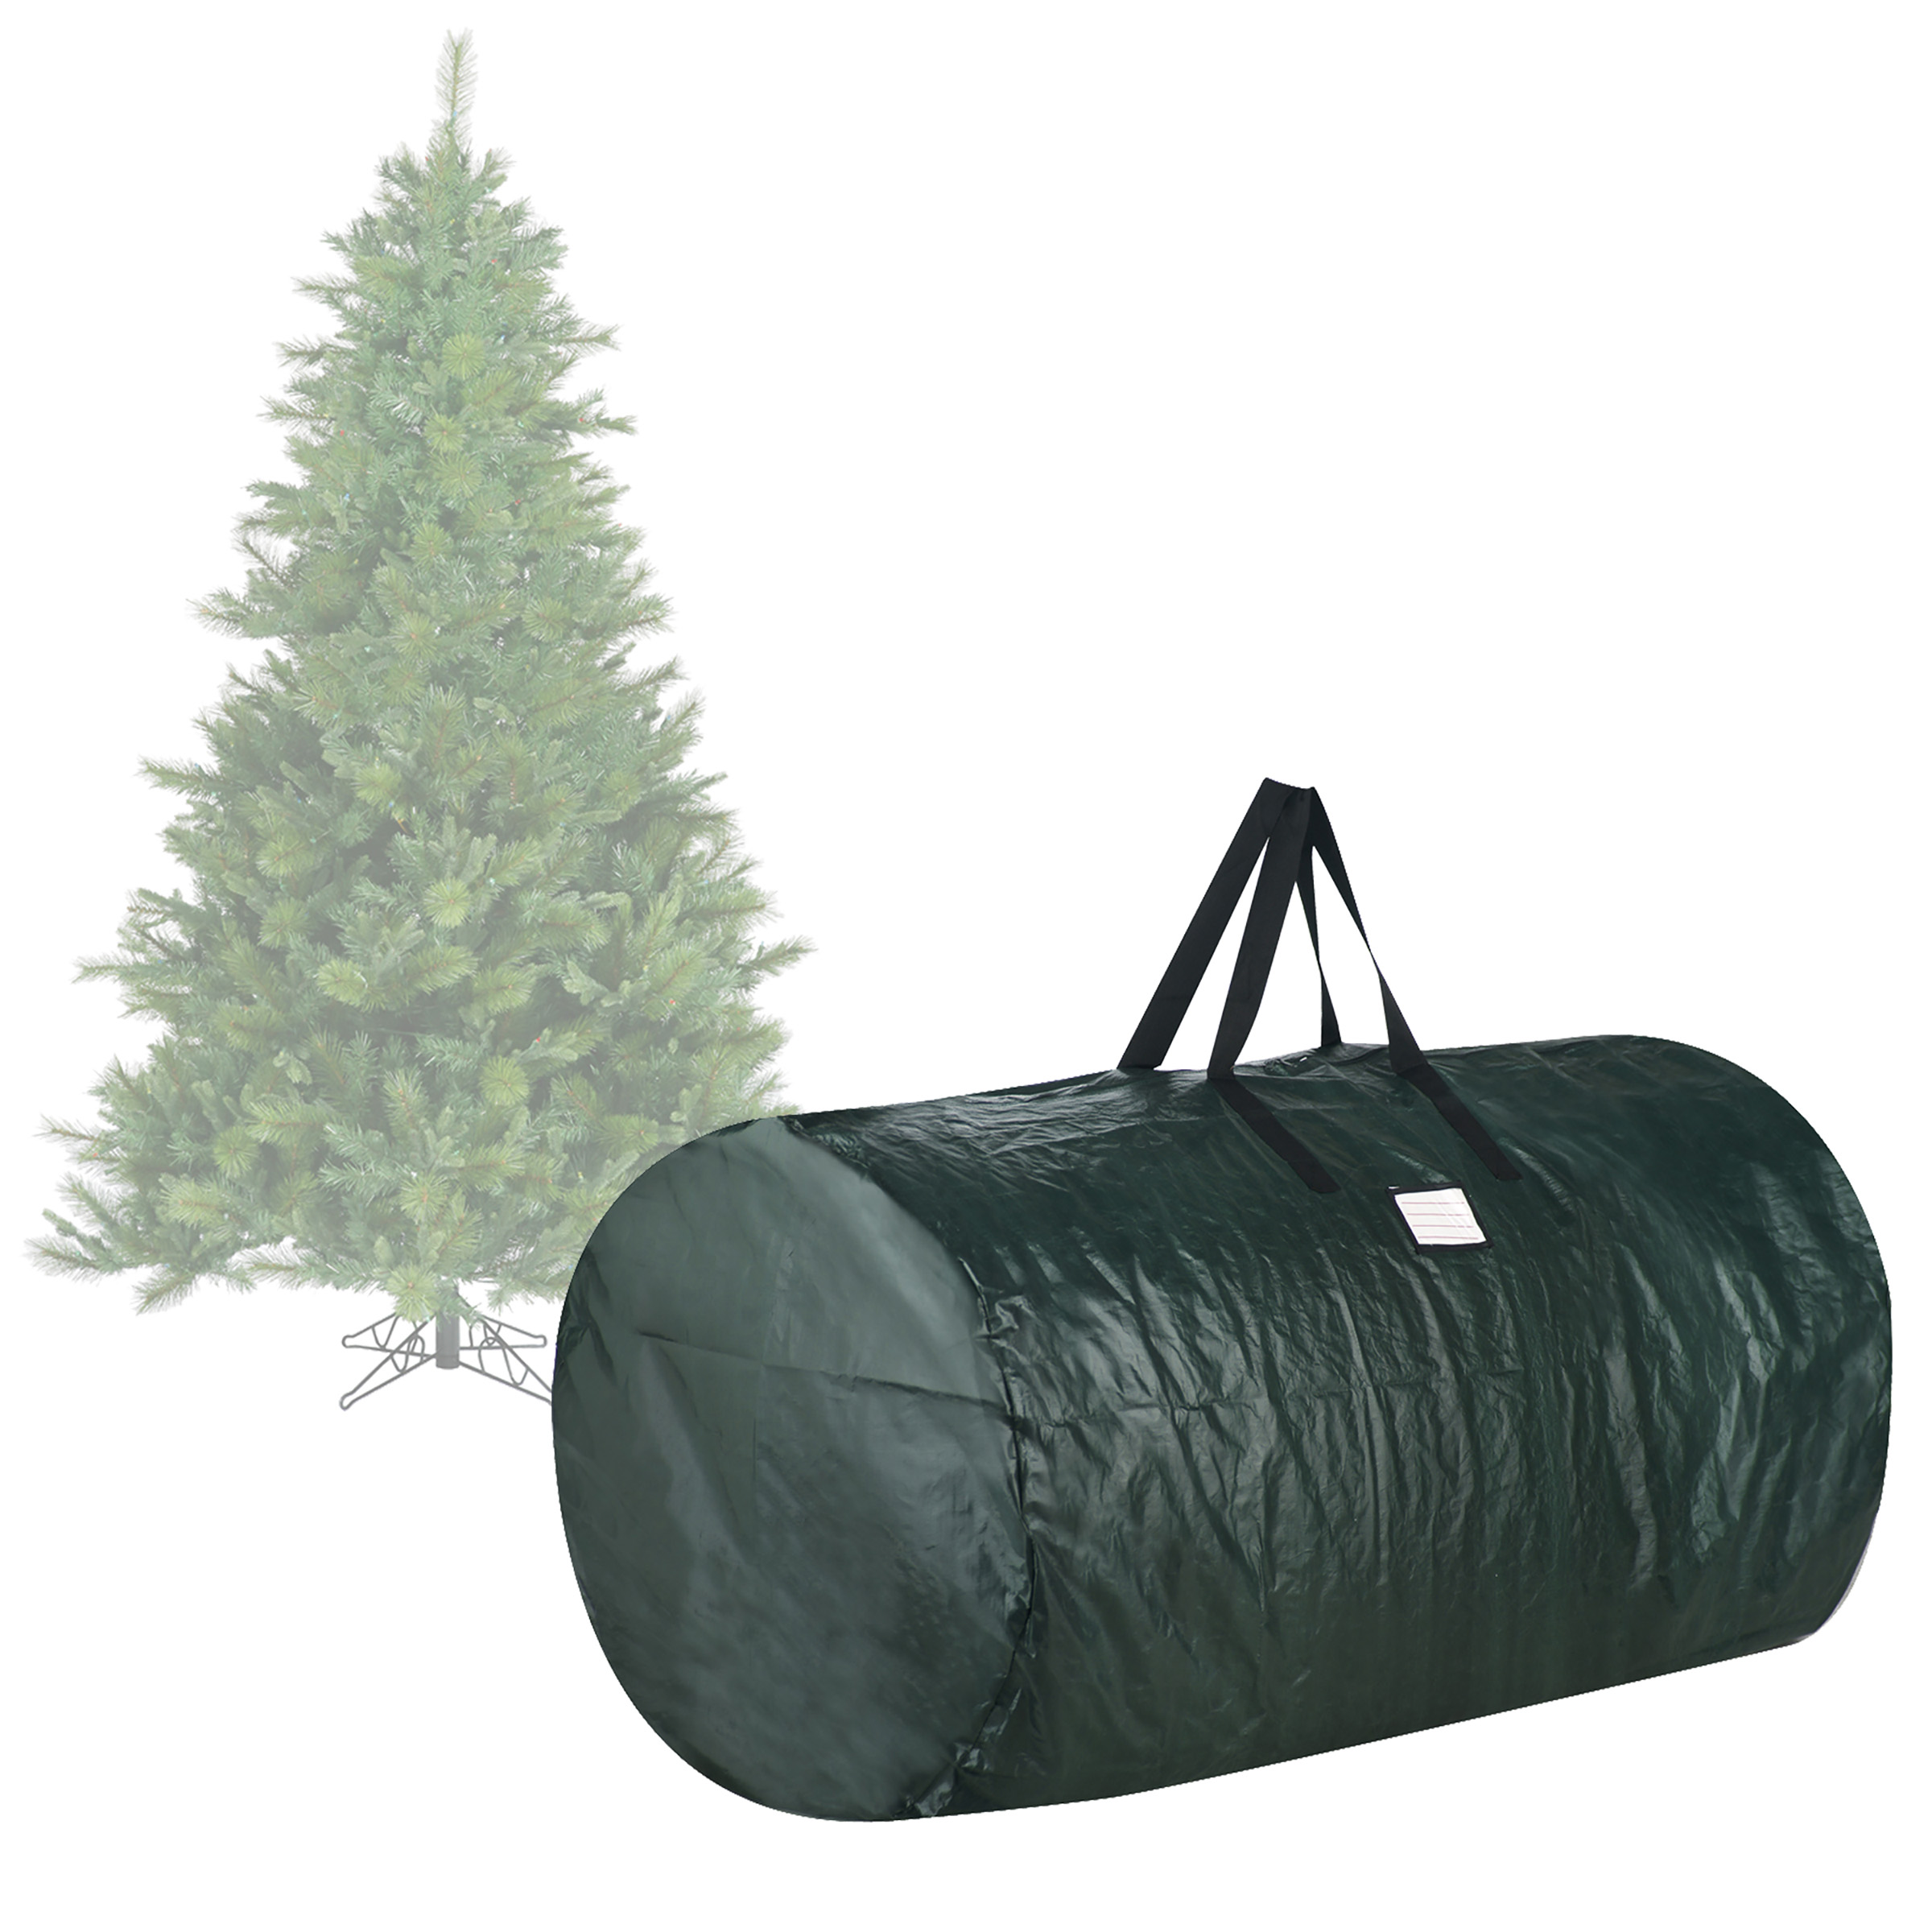 Elf Stor Premium Christmas Tree Bag Holiday Green Large For 7.5 Ft Tree